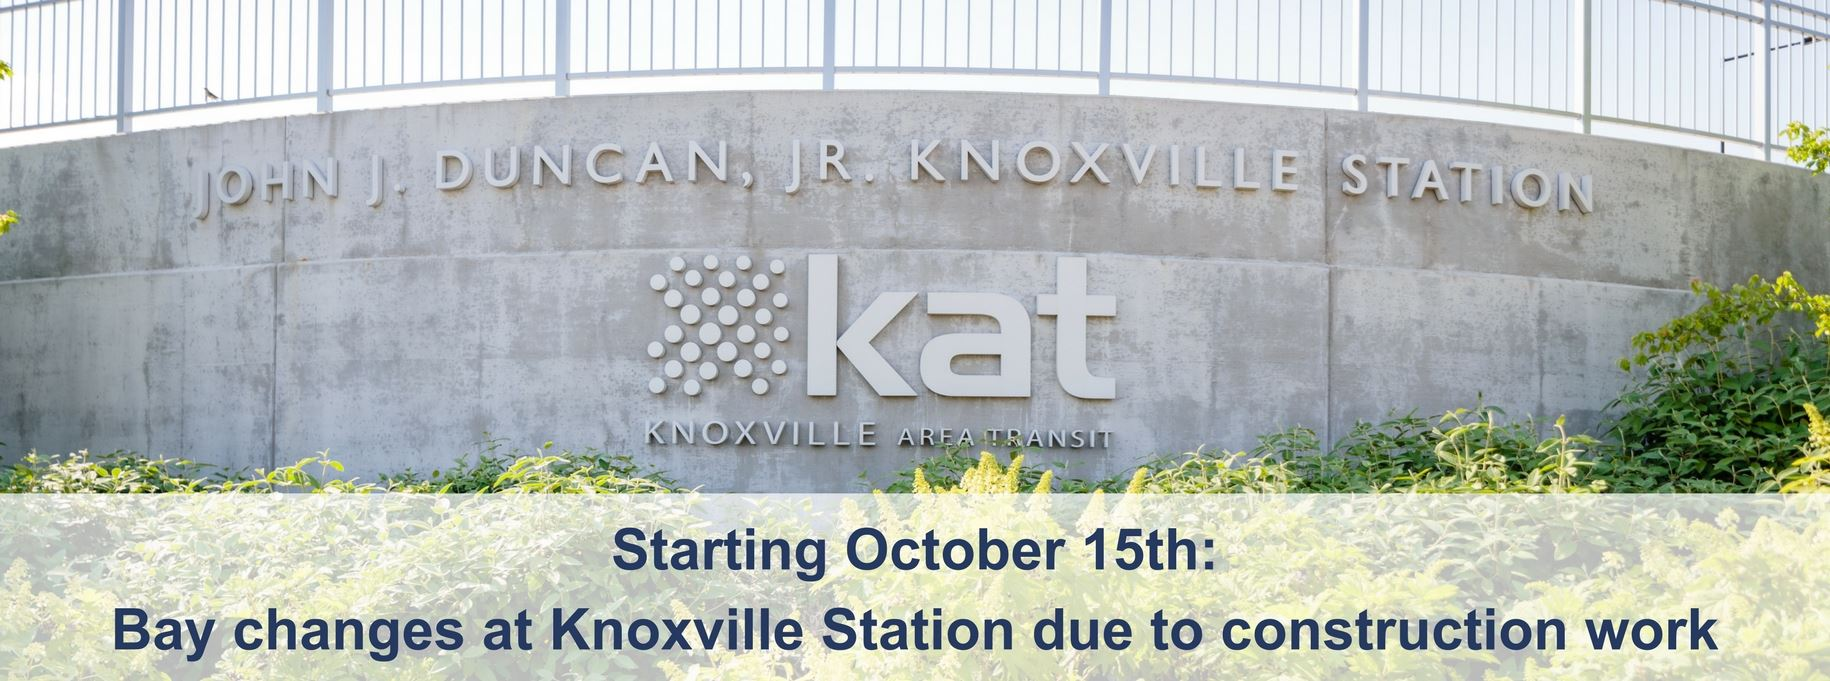 Construction Work at Knoxville Station